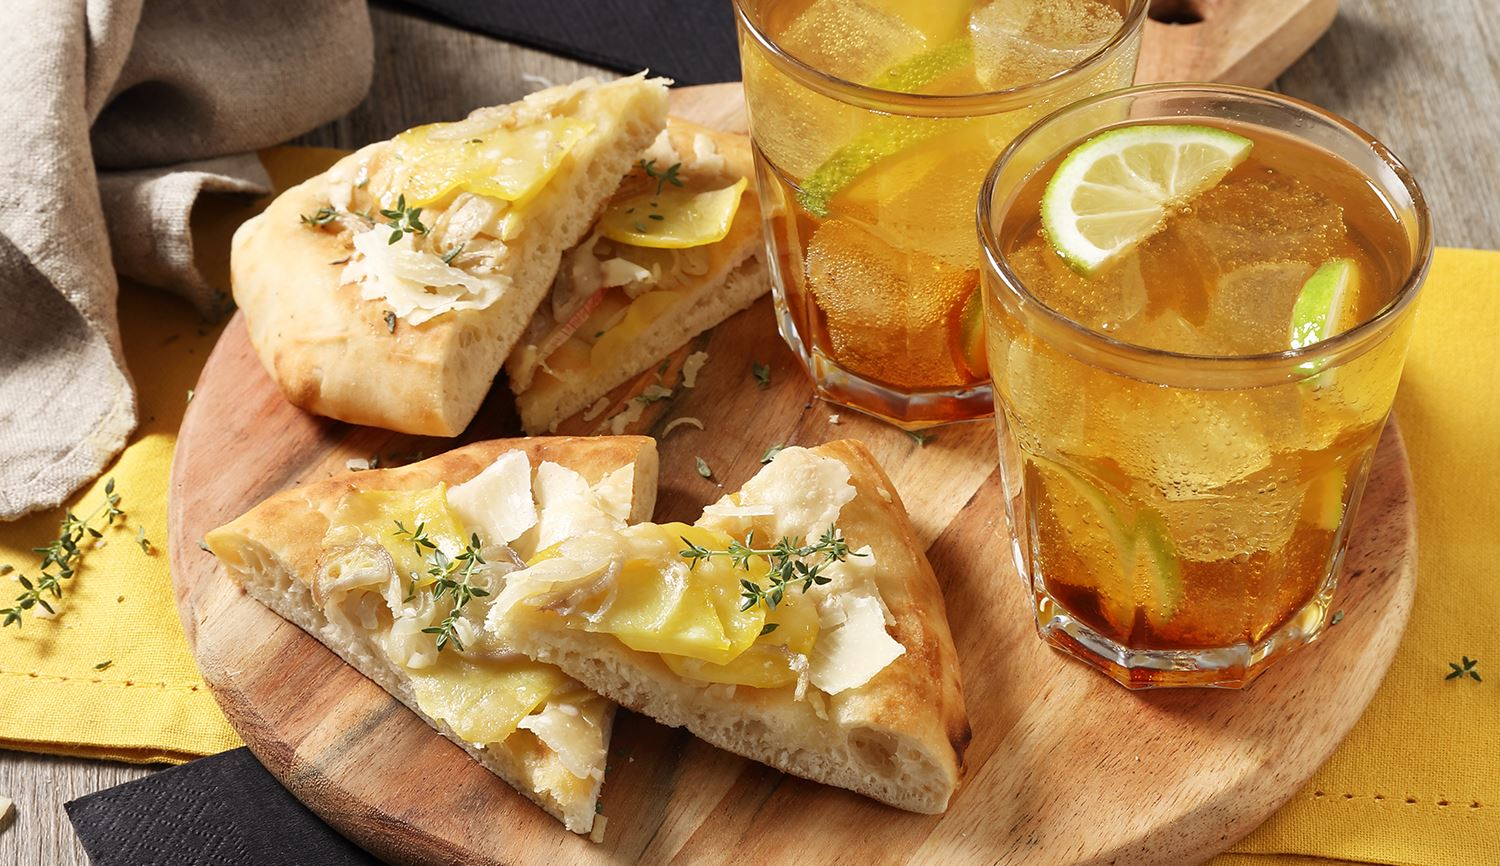 Cynar Spritz served with Focaccia garnished with Potatoes, Onions and Grana Padano Riserva